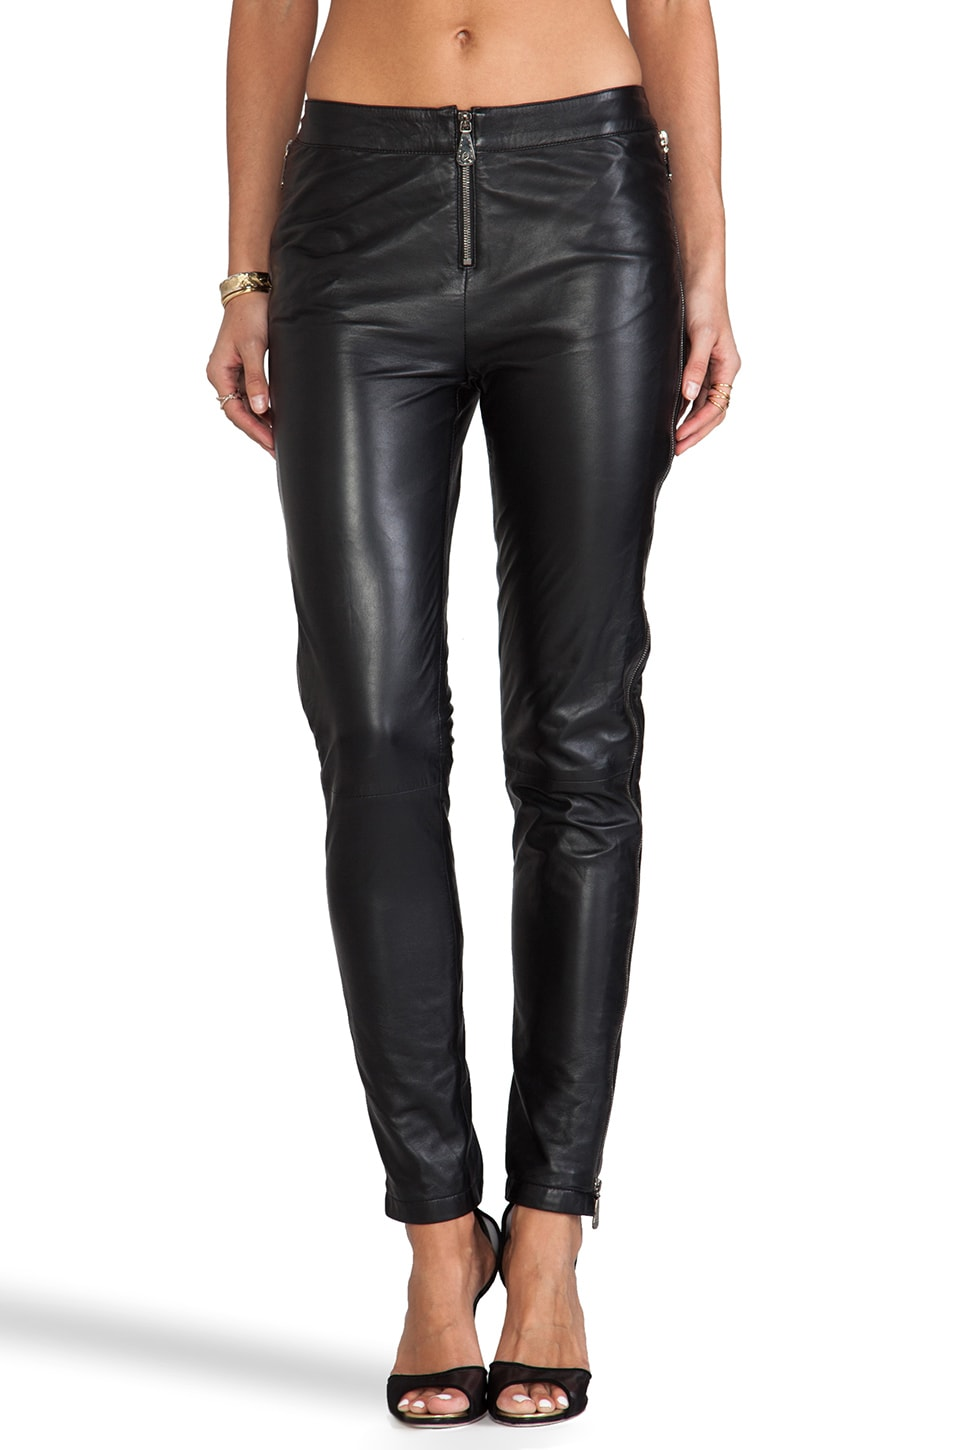 McQ Alexander McQueen Zip Leather Pant in Black